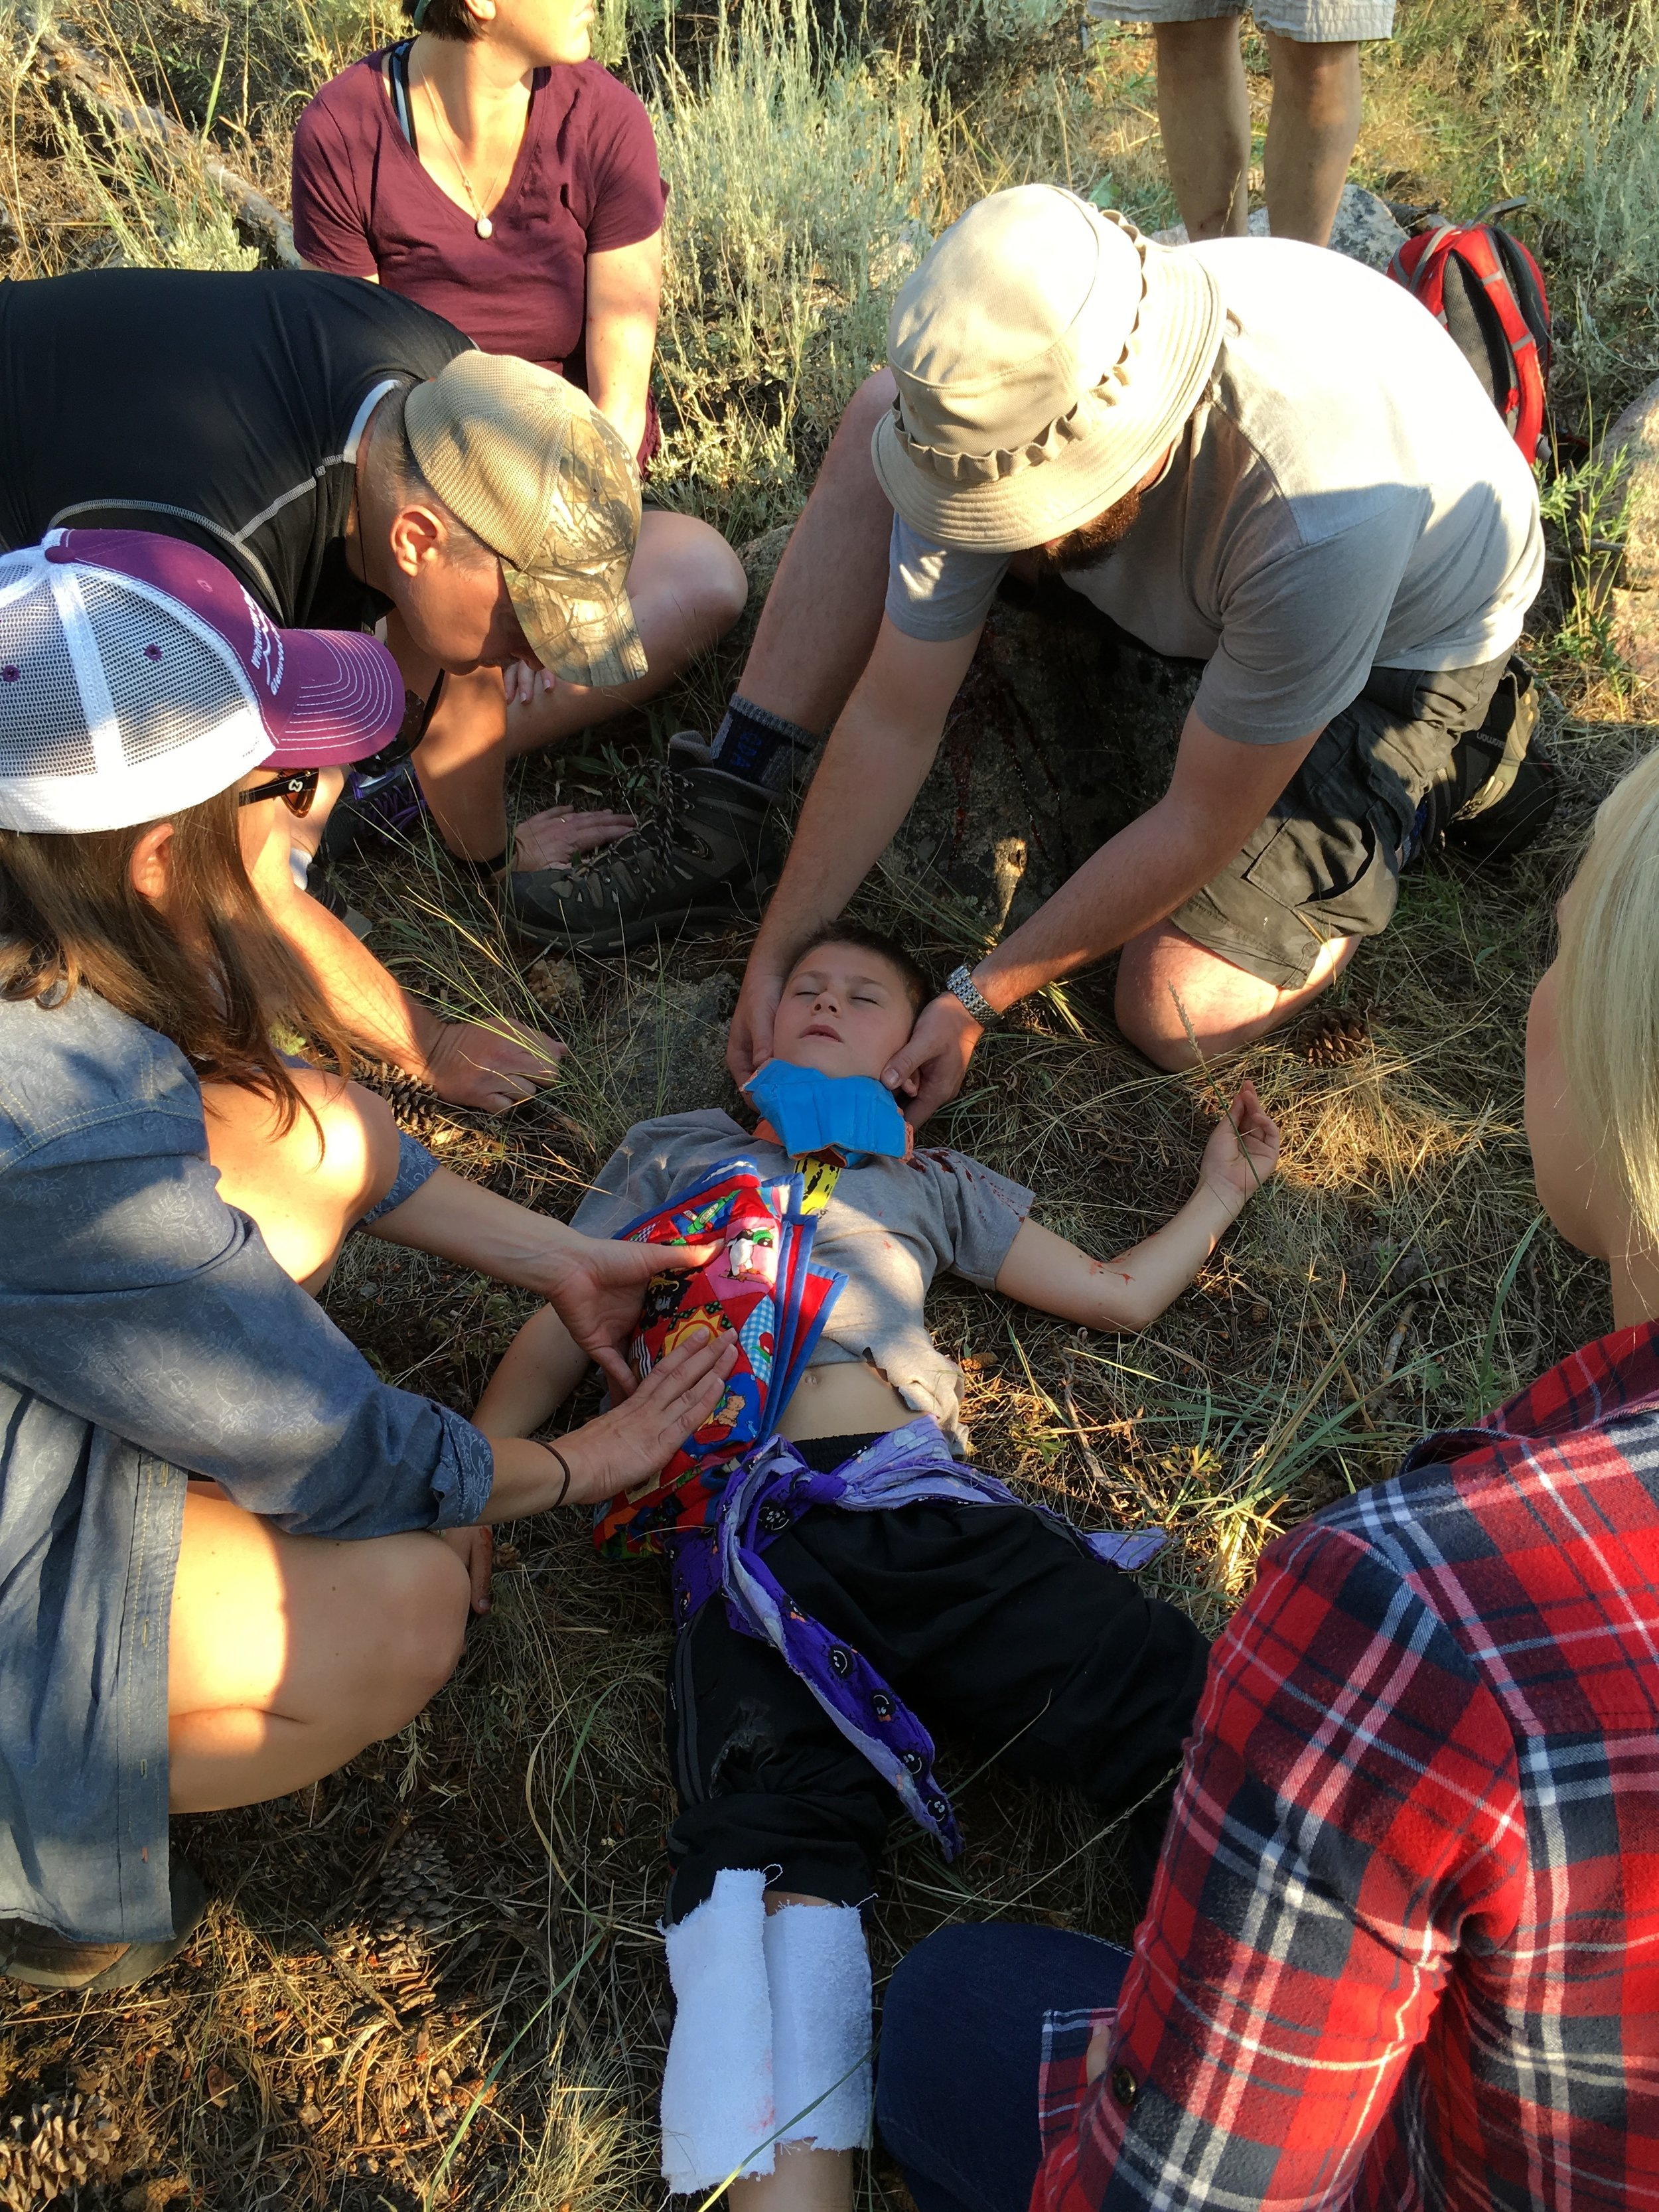 AWLS Students assess a pediatric trauma patient in a field scenario.